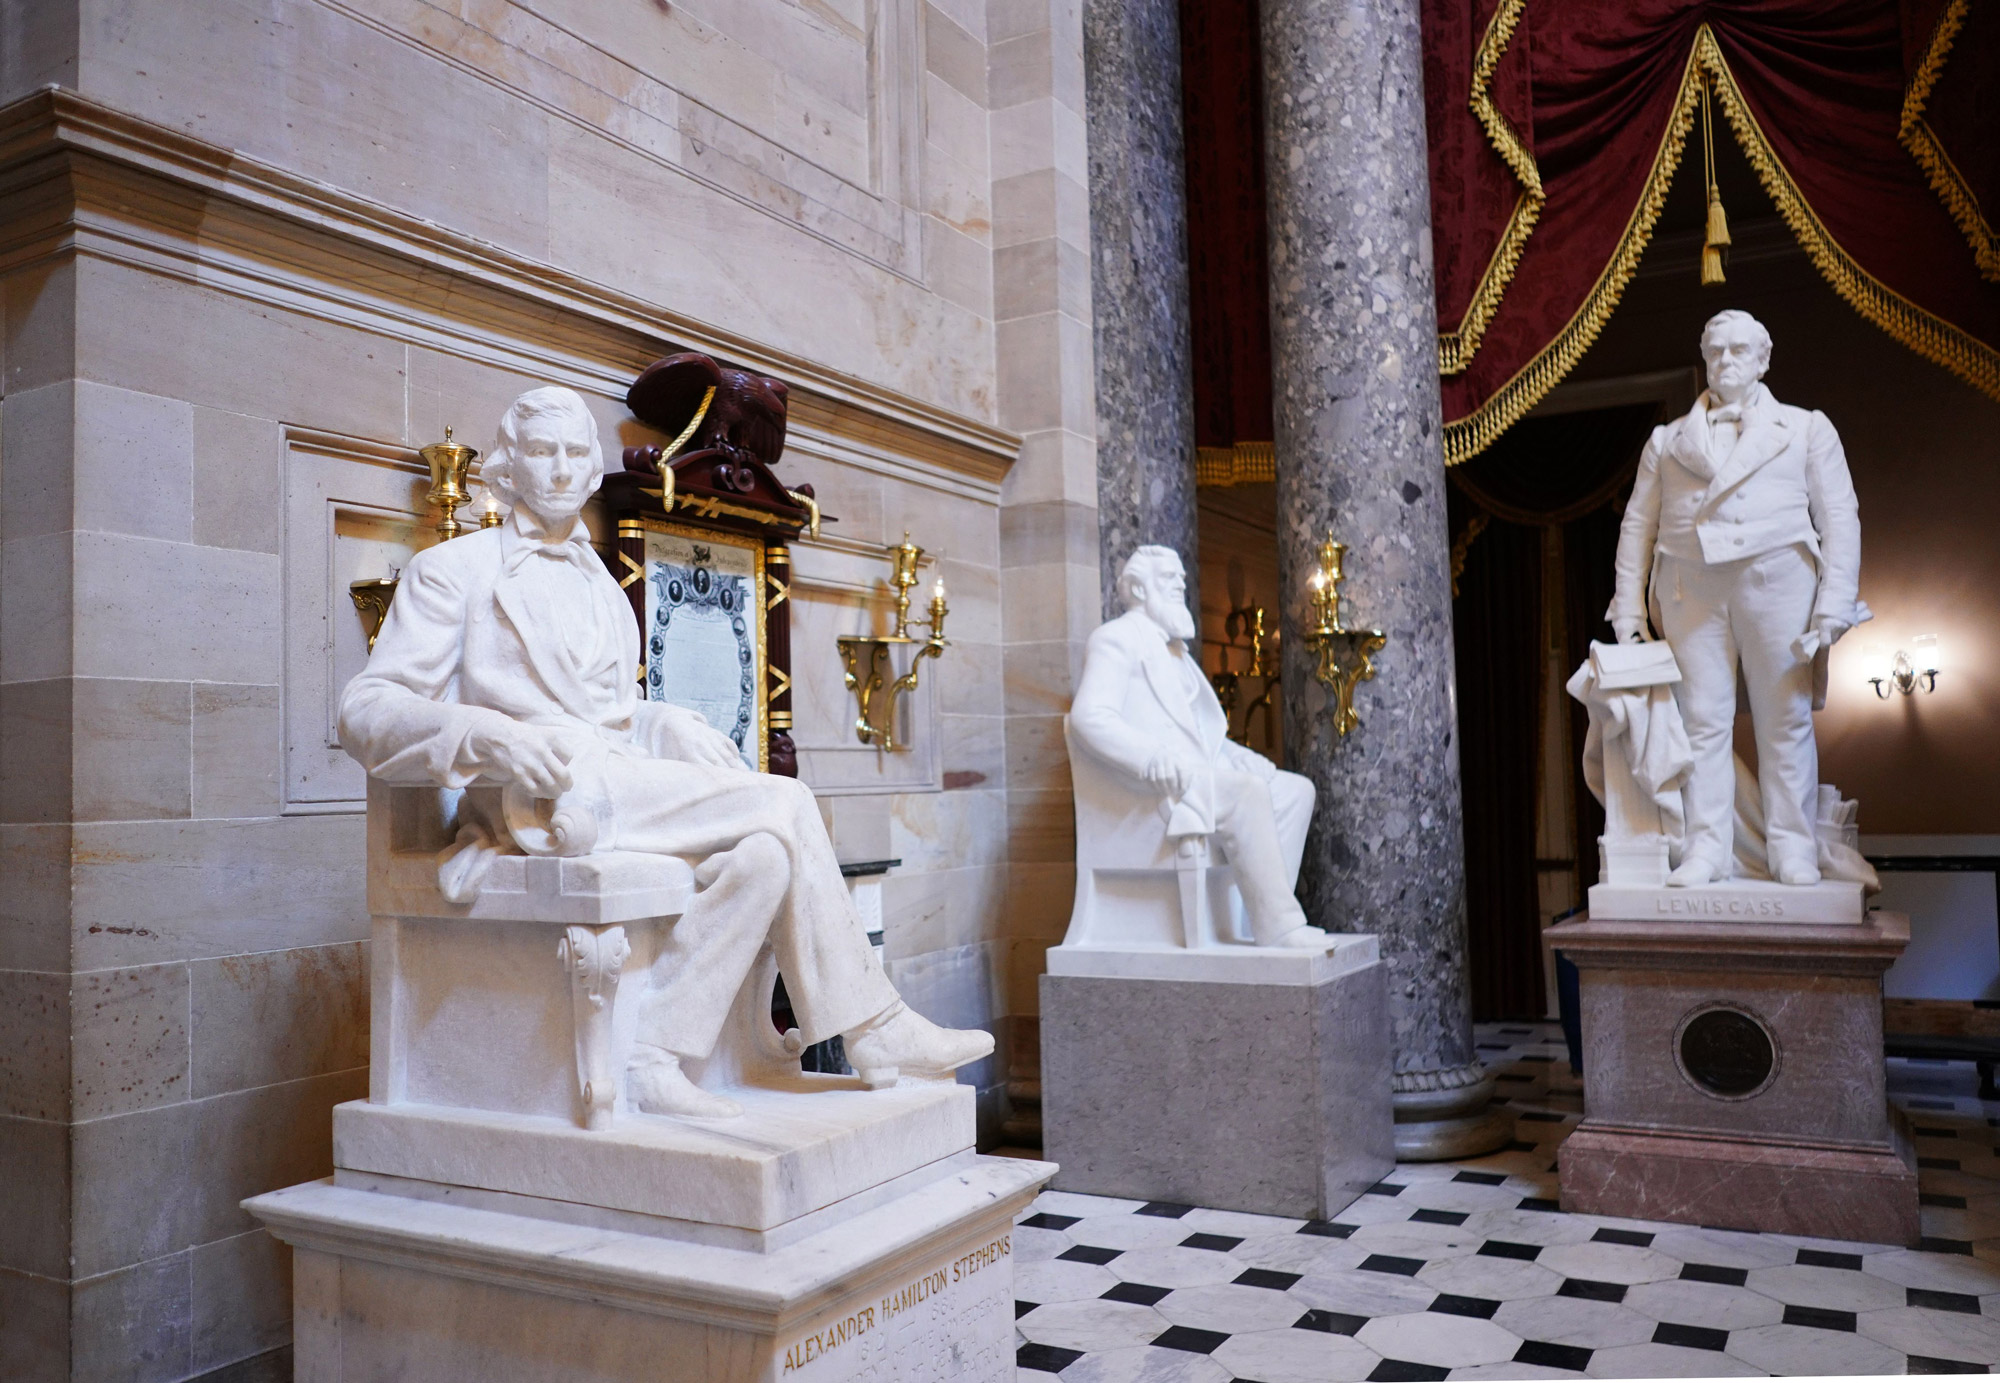 A statue of Alexander Hamilton Stephens (L), vice president of the Confederate States, by artist Gutzon Borglum is seen in Statuary Hall of the US Capitol in Washington on June 11.